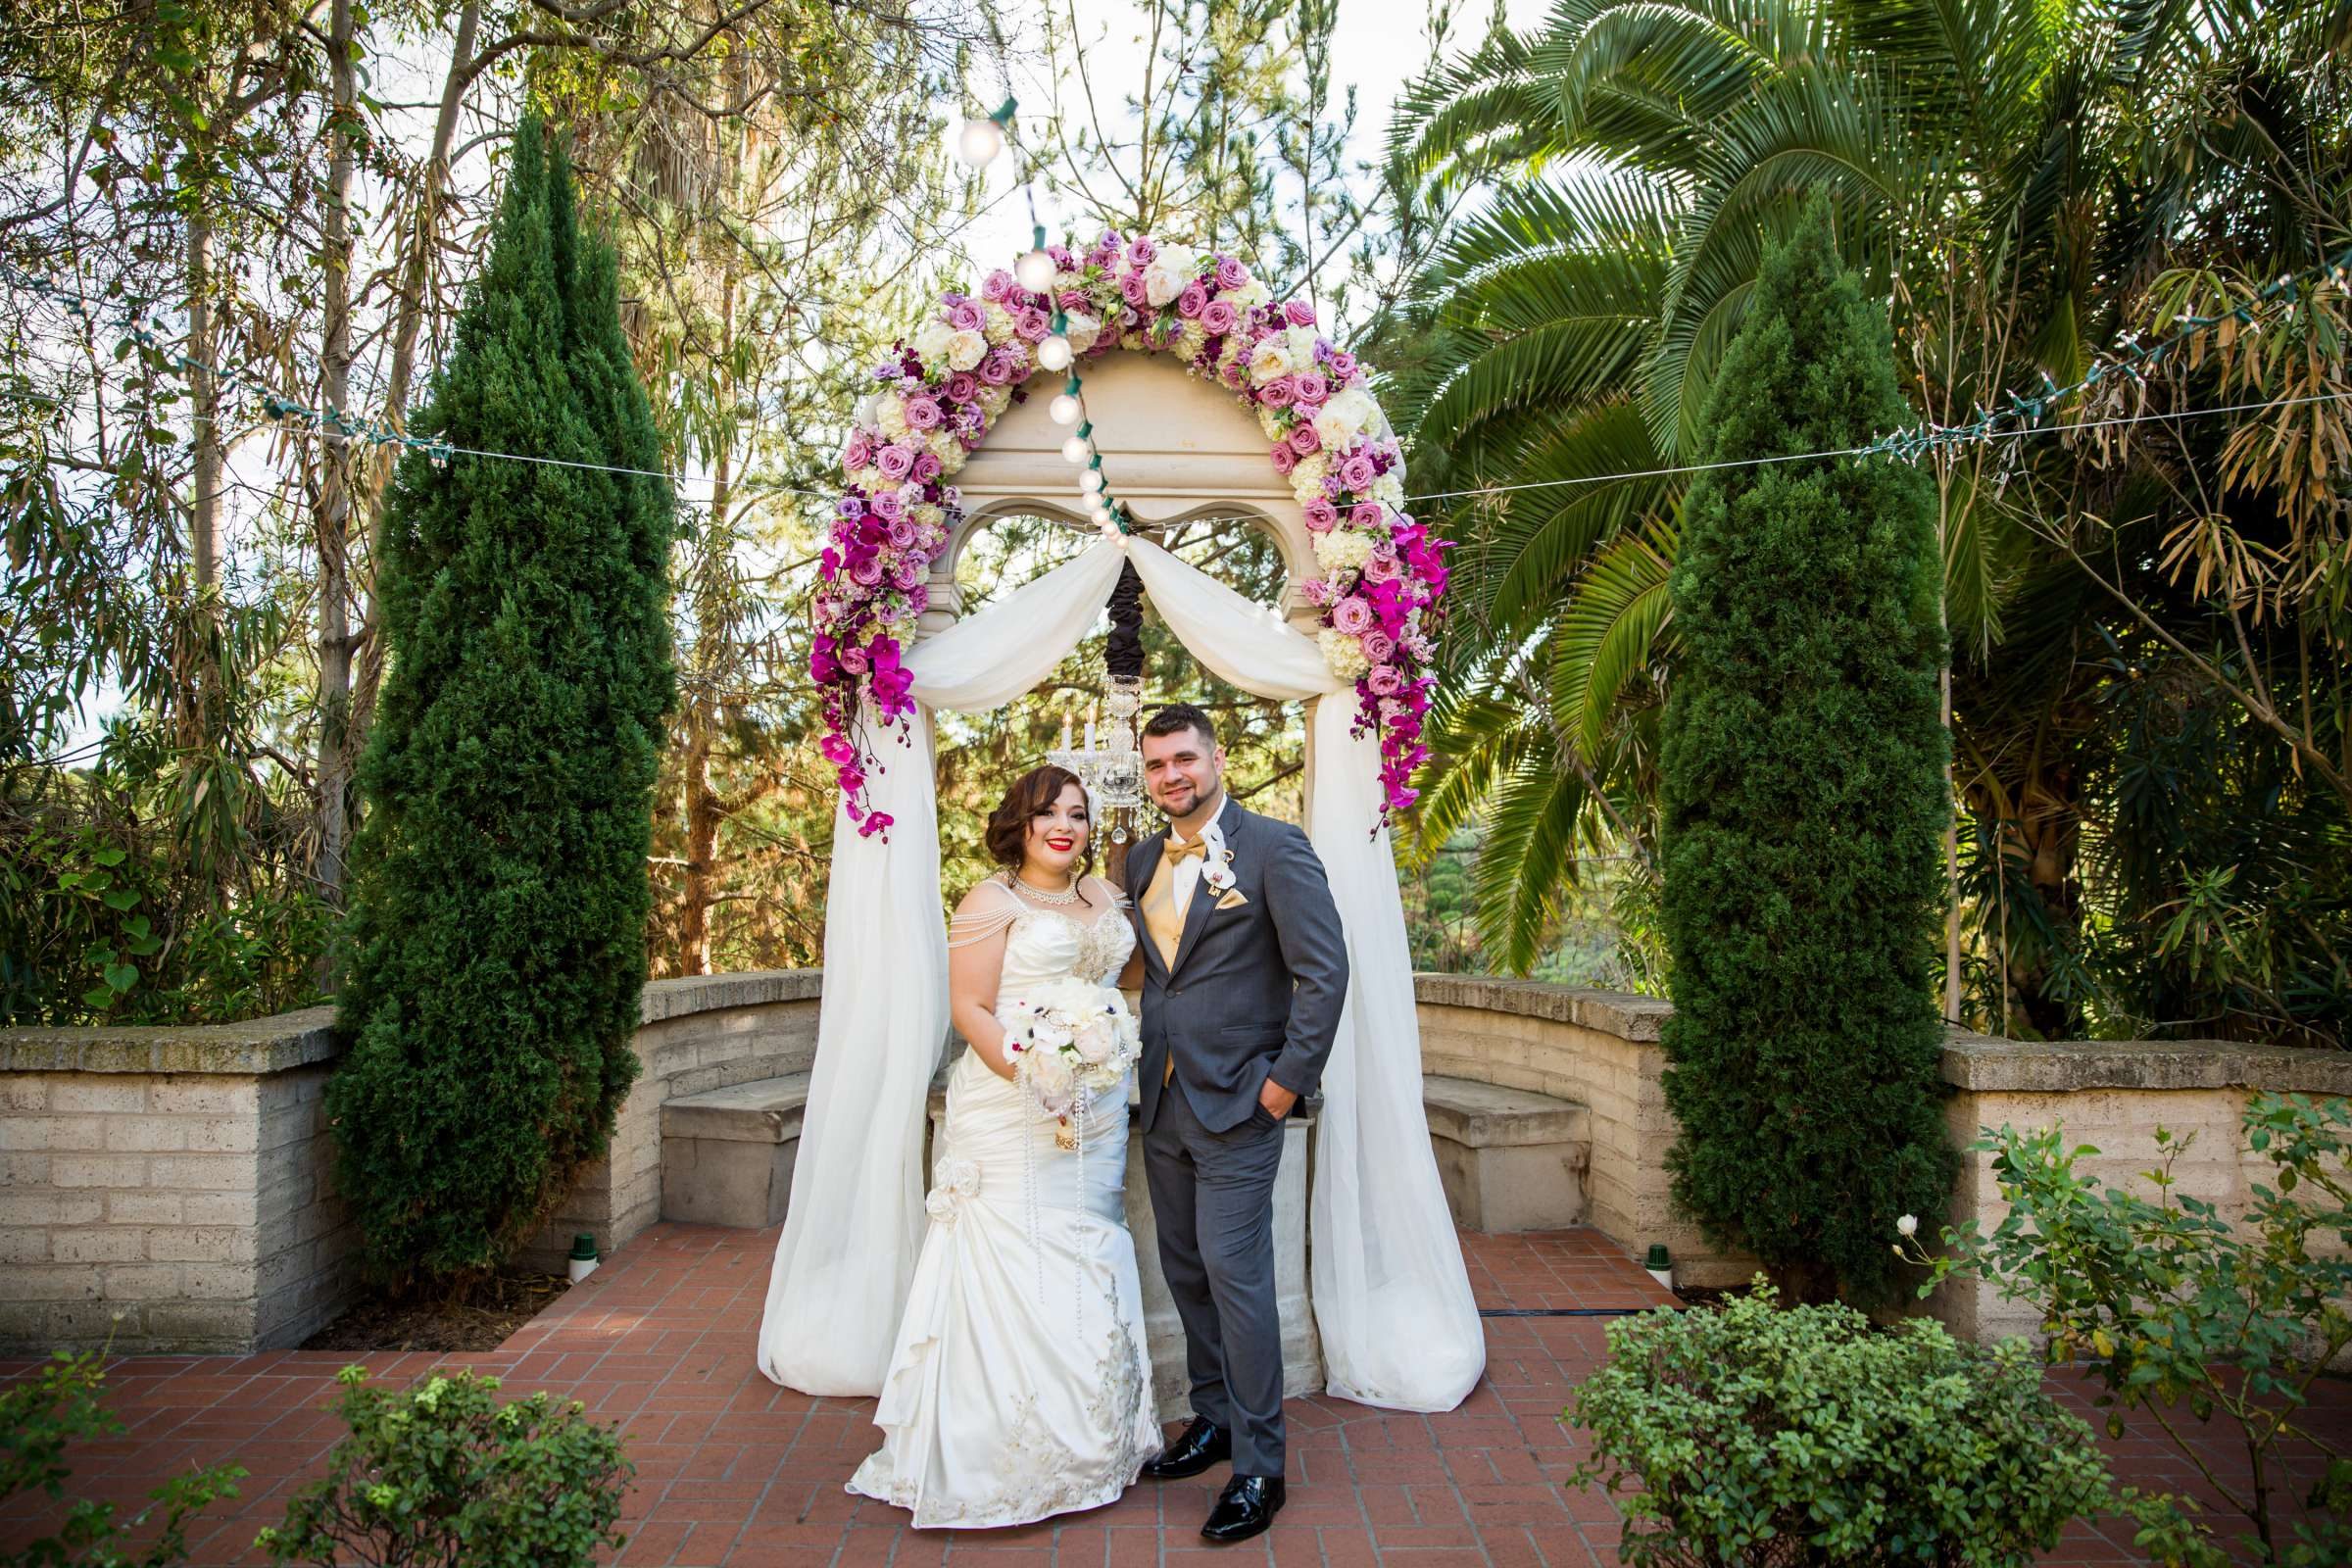 The Prado Wedding coordinated by Breezy Day Weddings, Aalis and Michael Wedding Photo #70 by True Photography